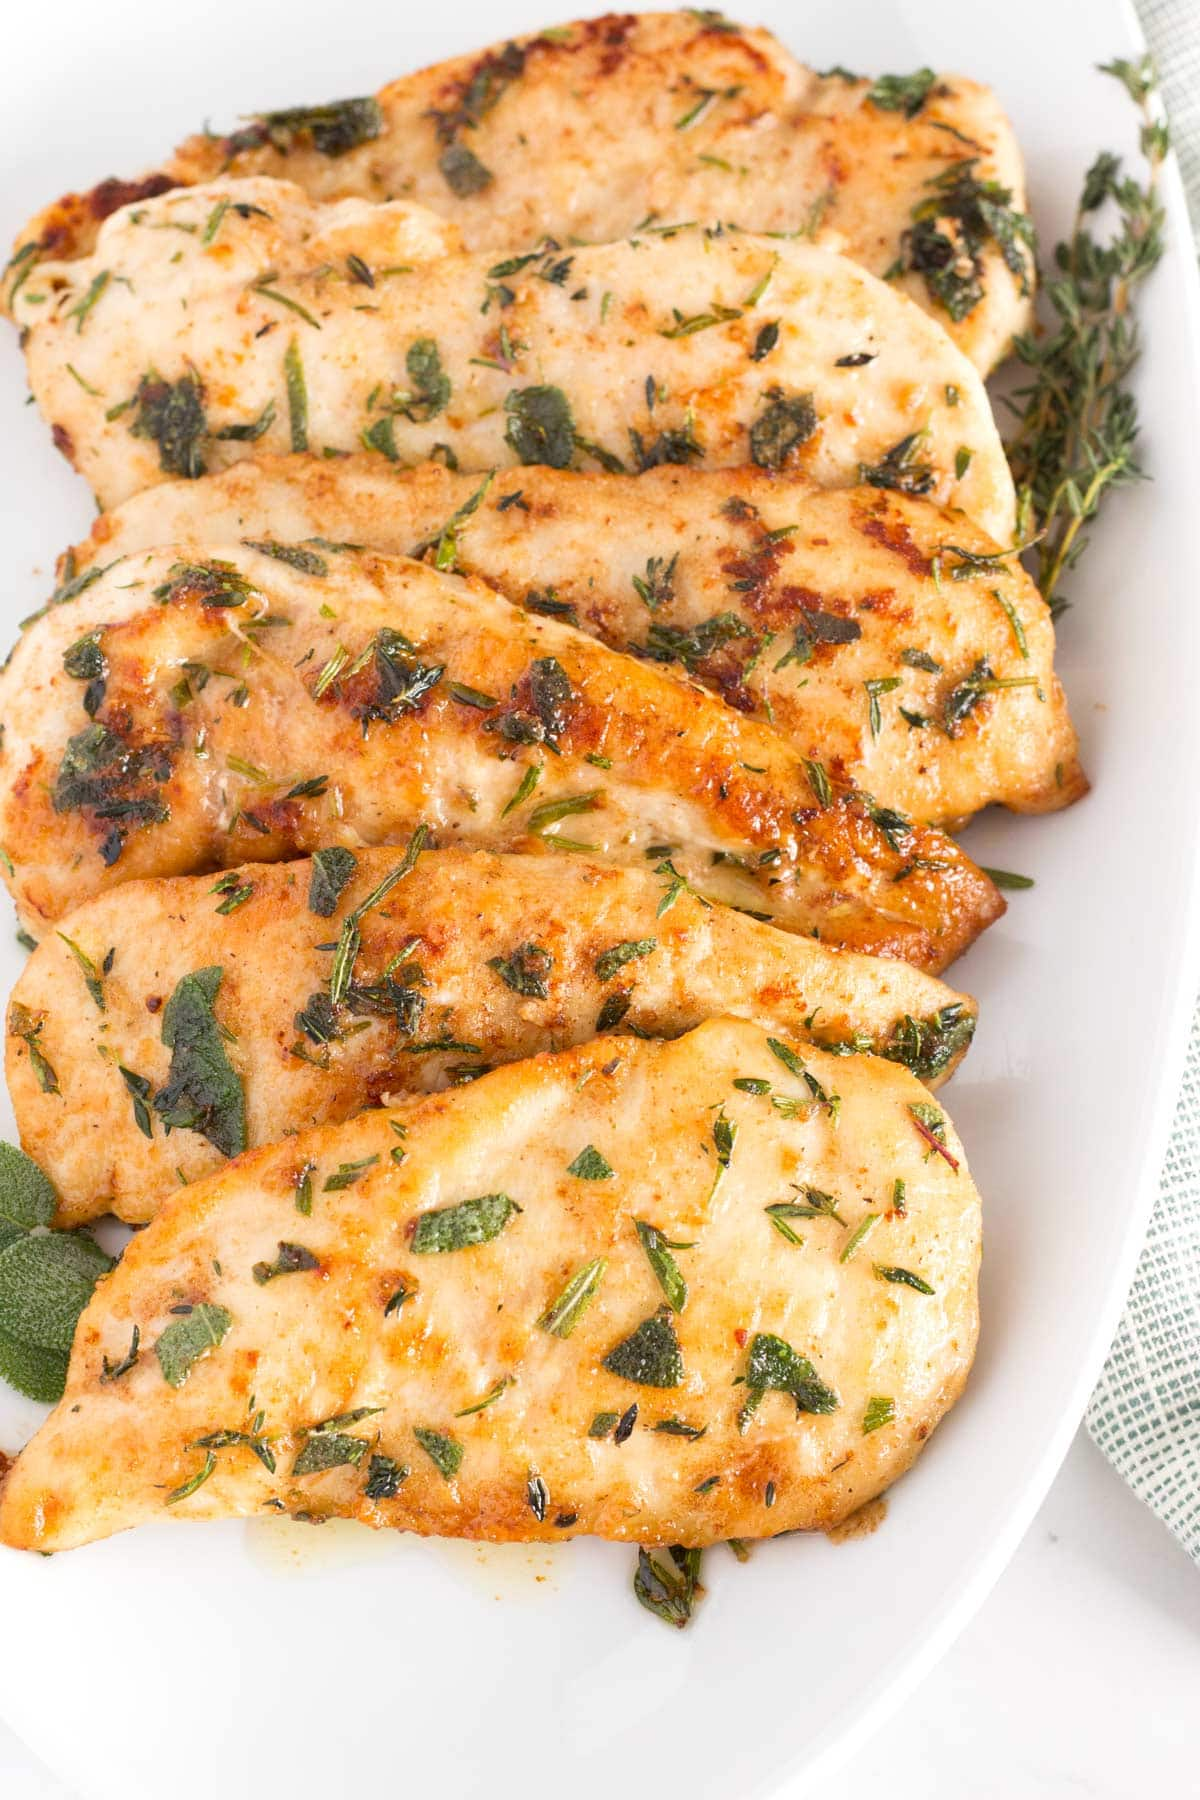 White serving dish with chicken breasts with fresh herbs.